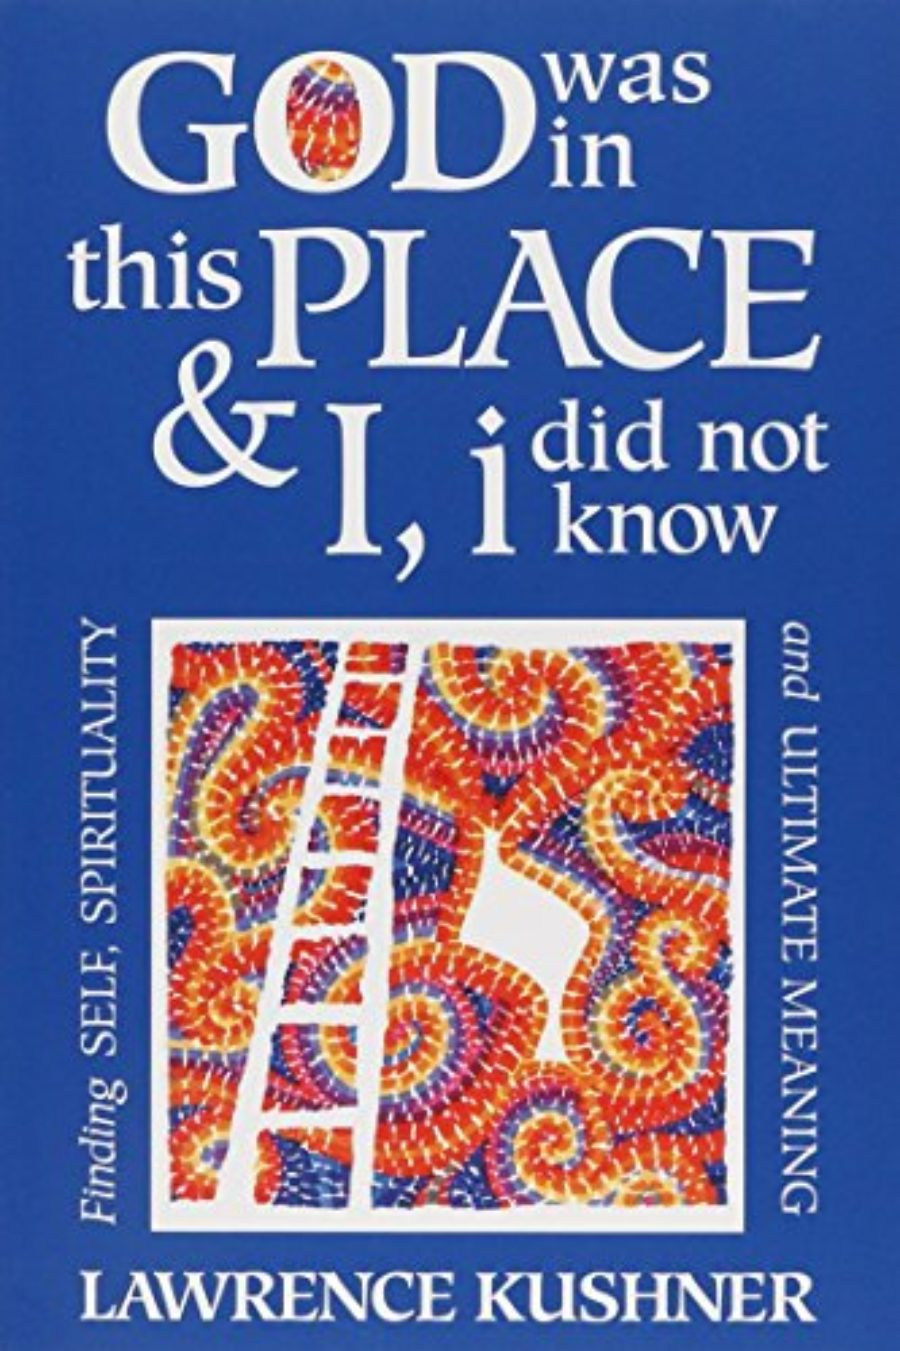 Cover of God Was in This Place & I, i Did Not Know: Finding Self, Spirituality and Ultimate Meaning (Kushner)